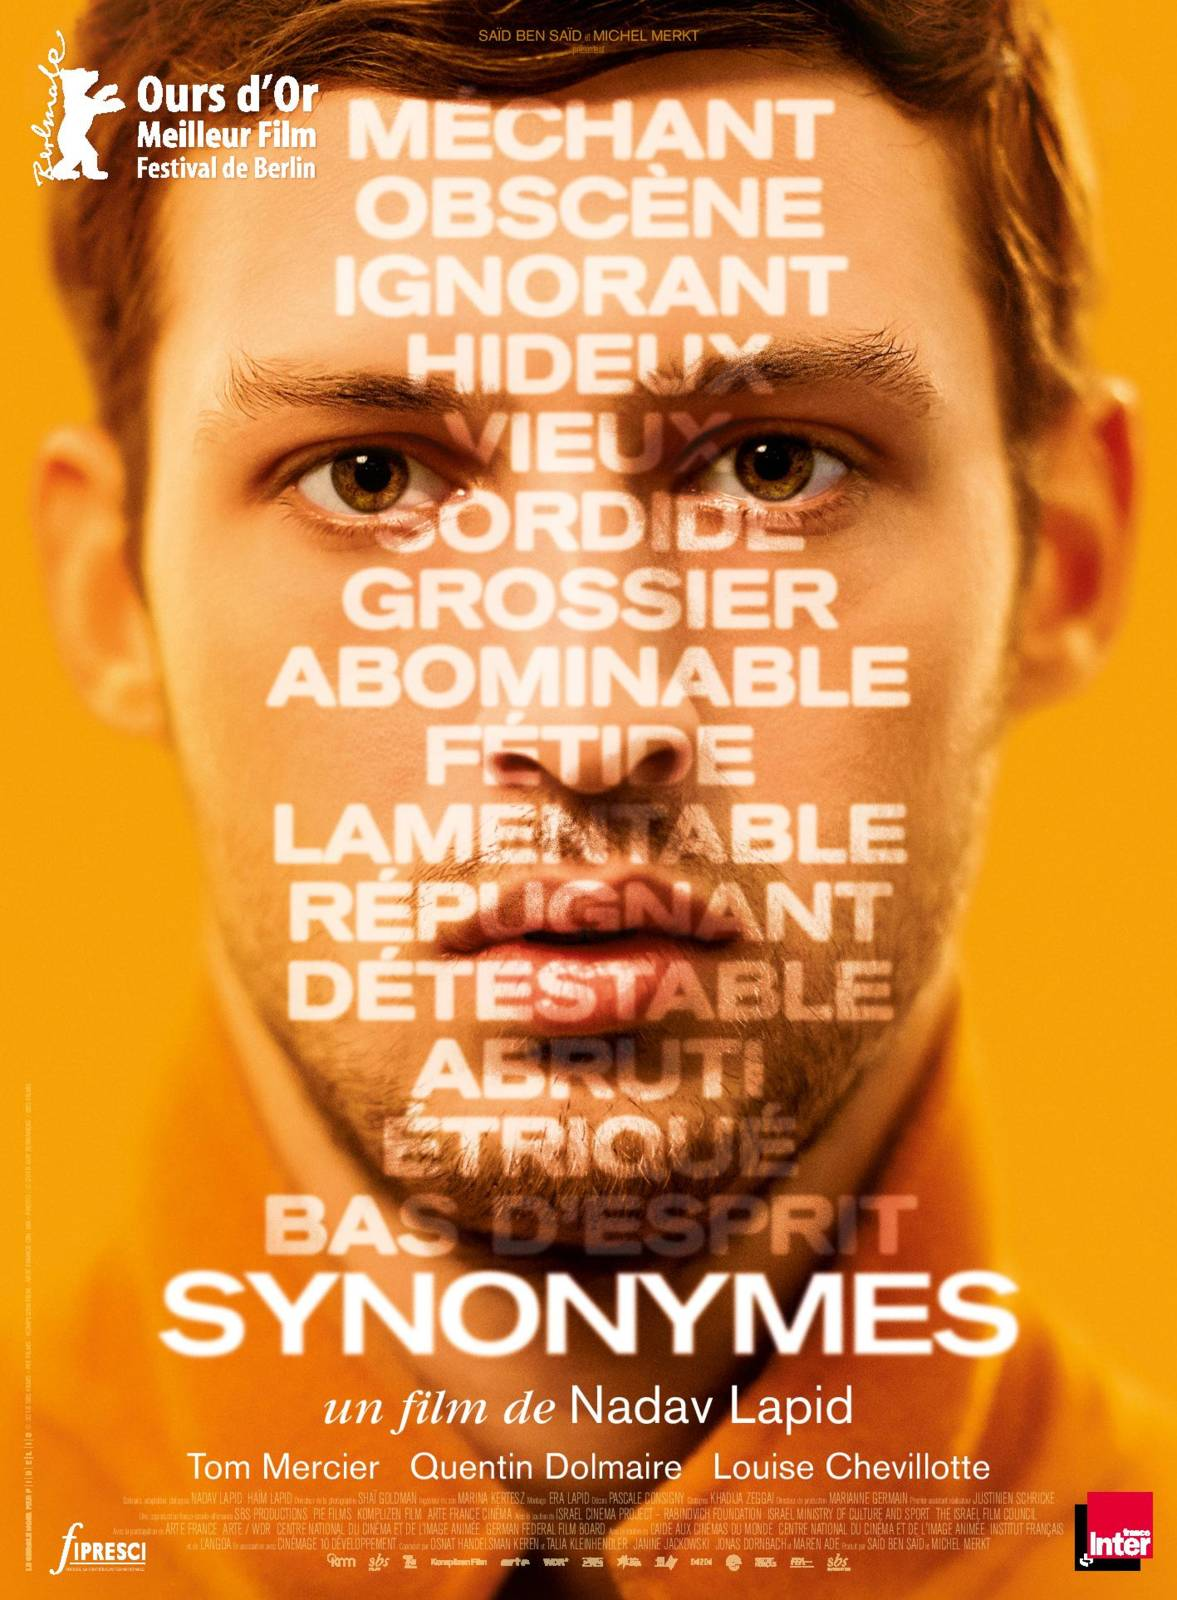 Hornbach D Movie Synonymes Cineman